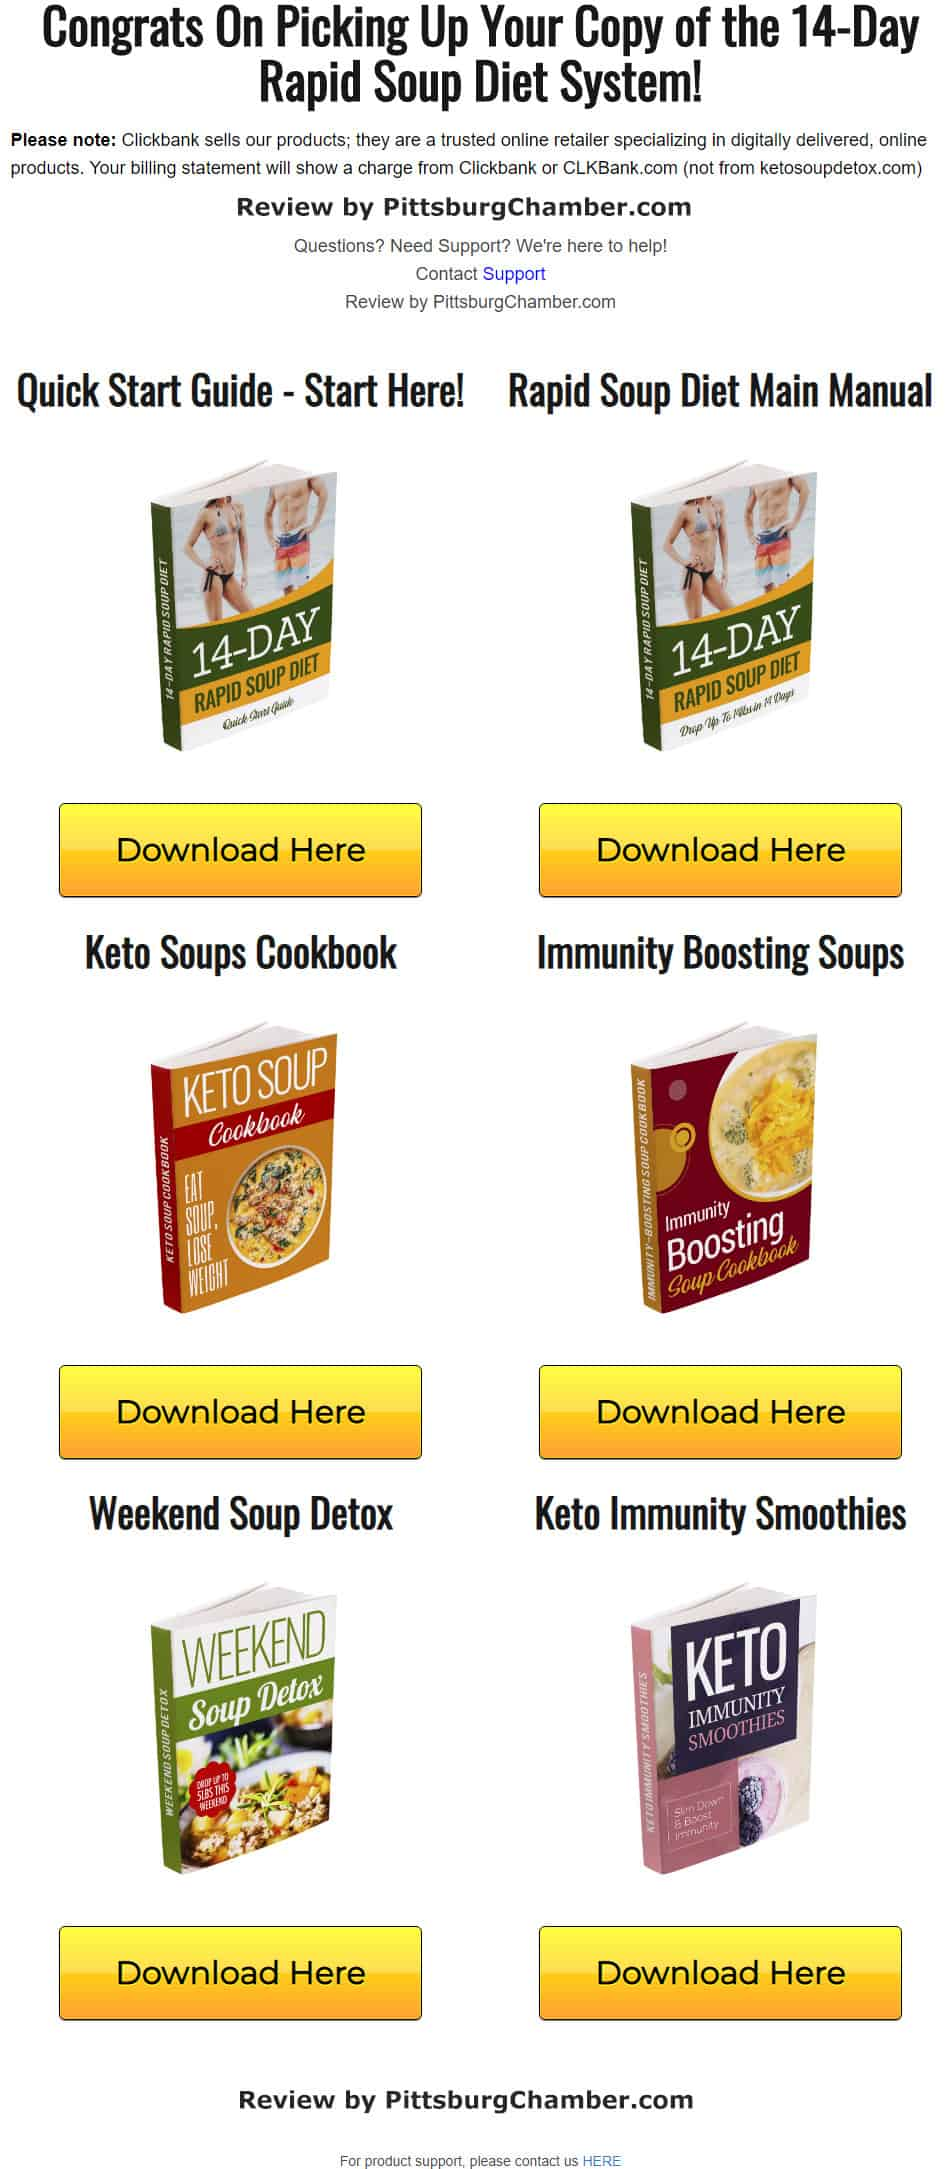 How the Download Page for 14-Day Rapid Soup Diet Looks Like!